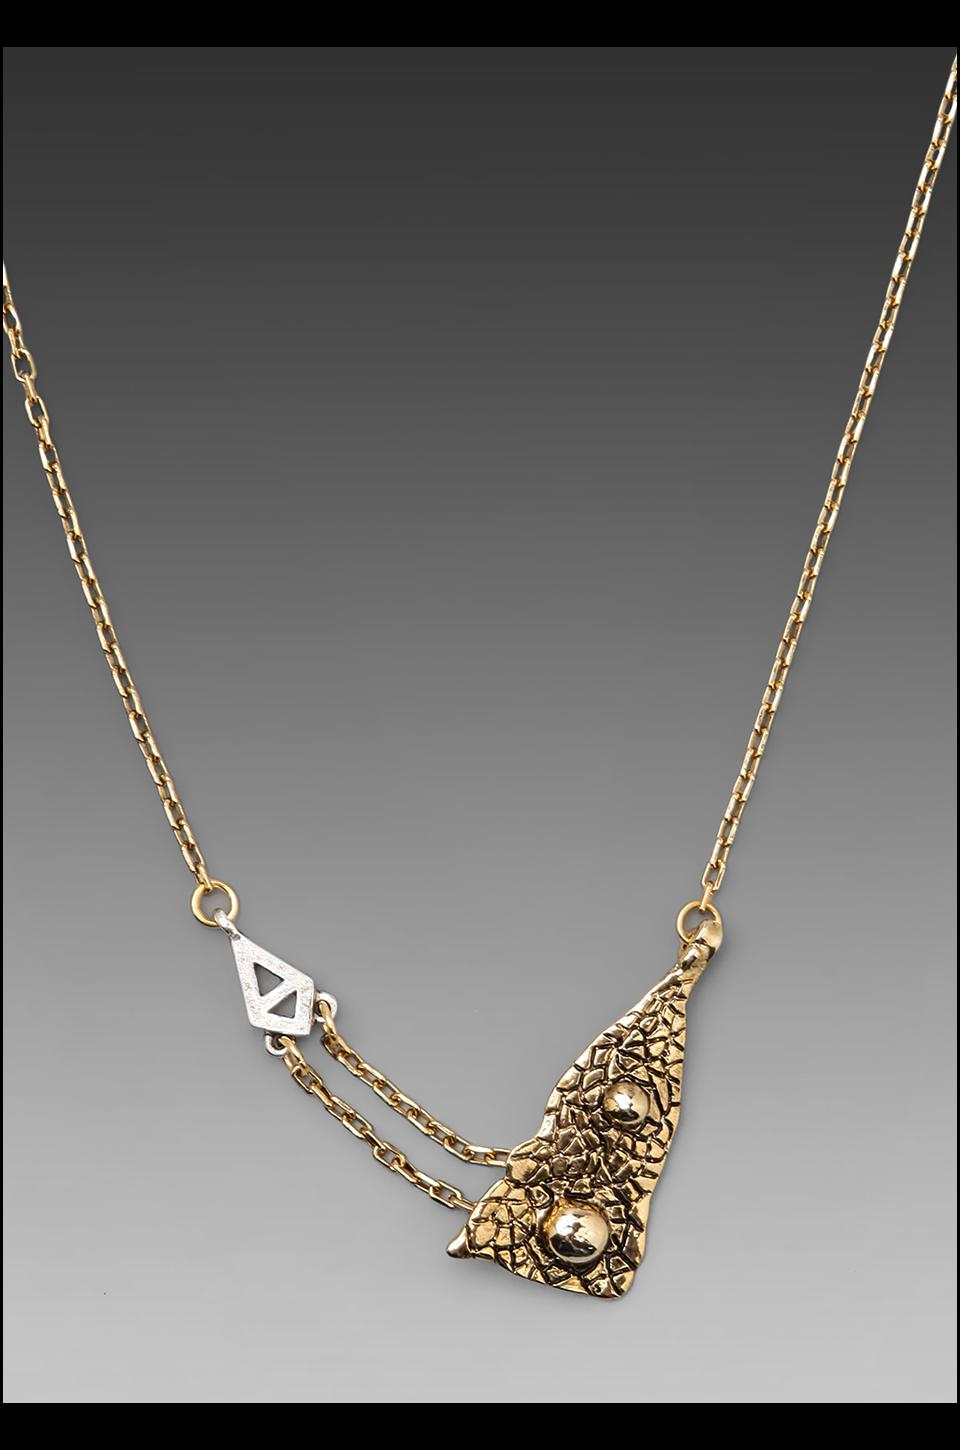 Low Luv x Erin Wasson Lost Island Necklace in Gold